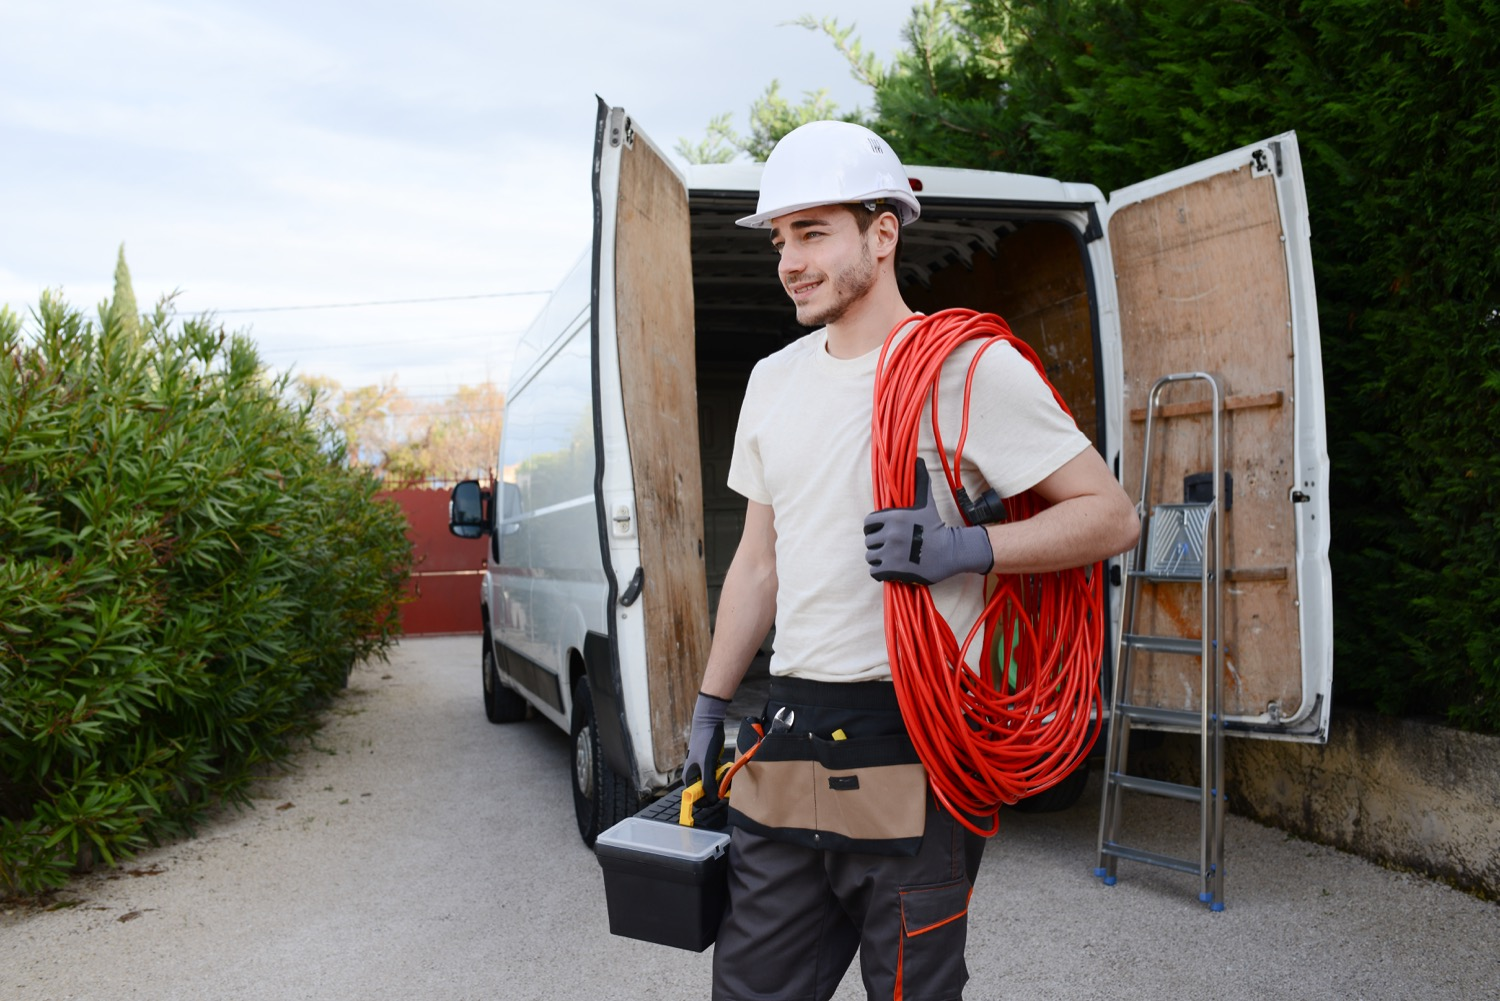 A contractor with a white hard hat holding a toolbox and extension cord, standing behind his work van.